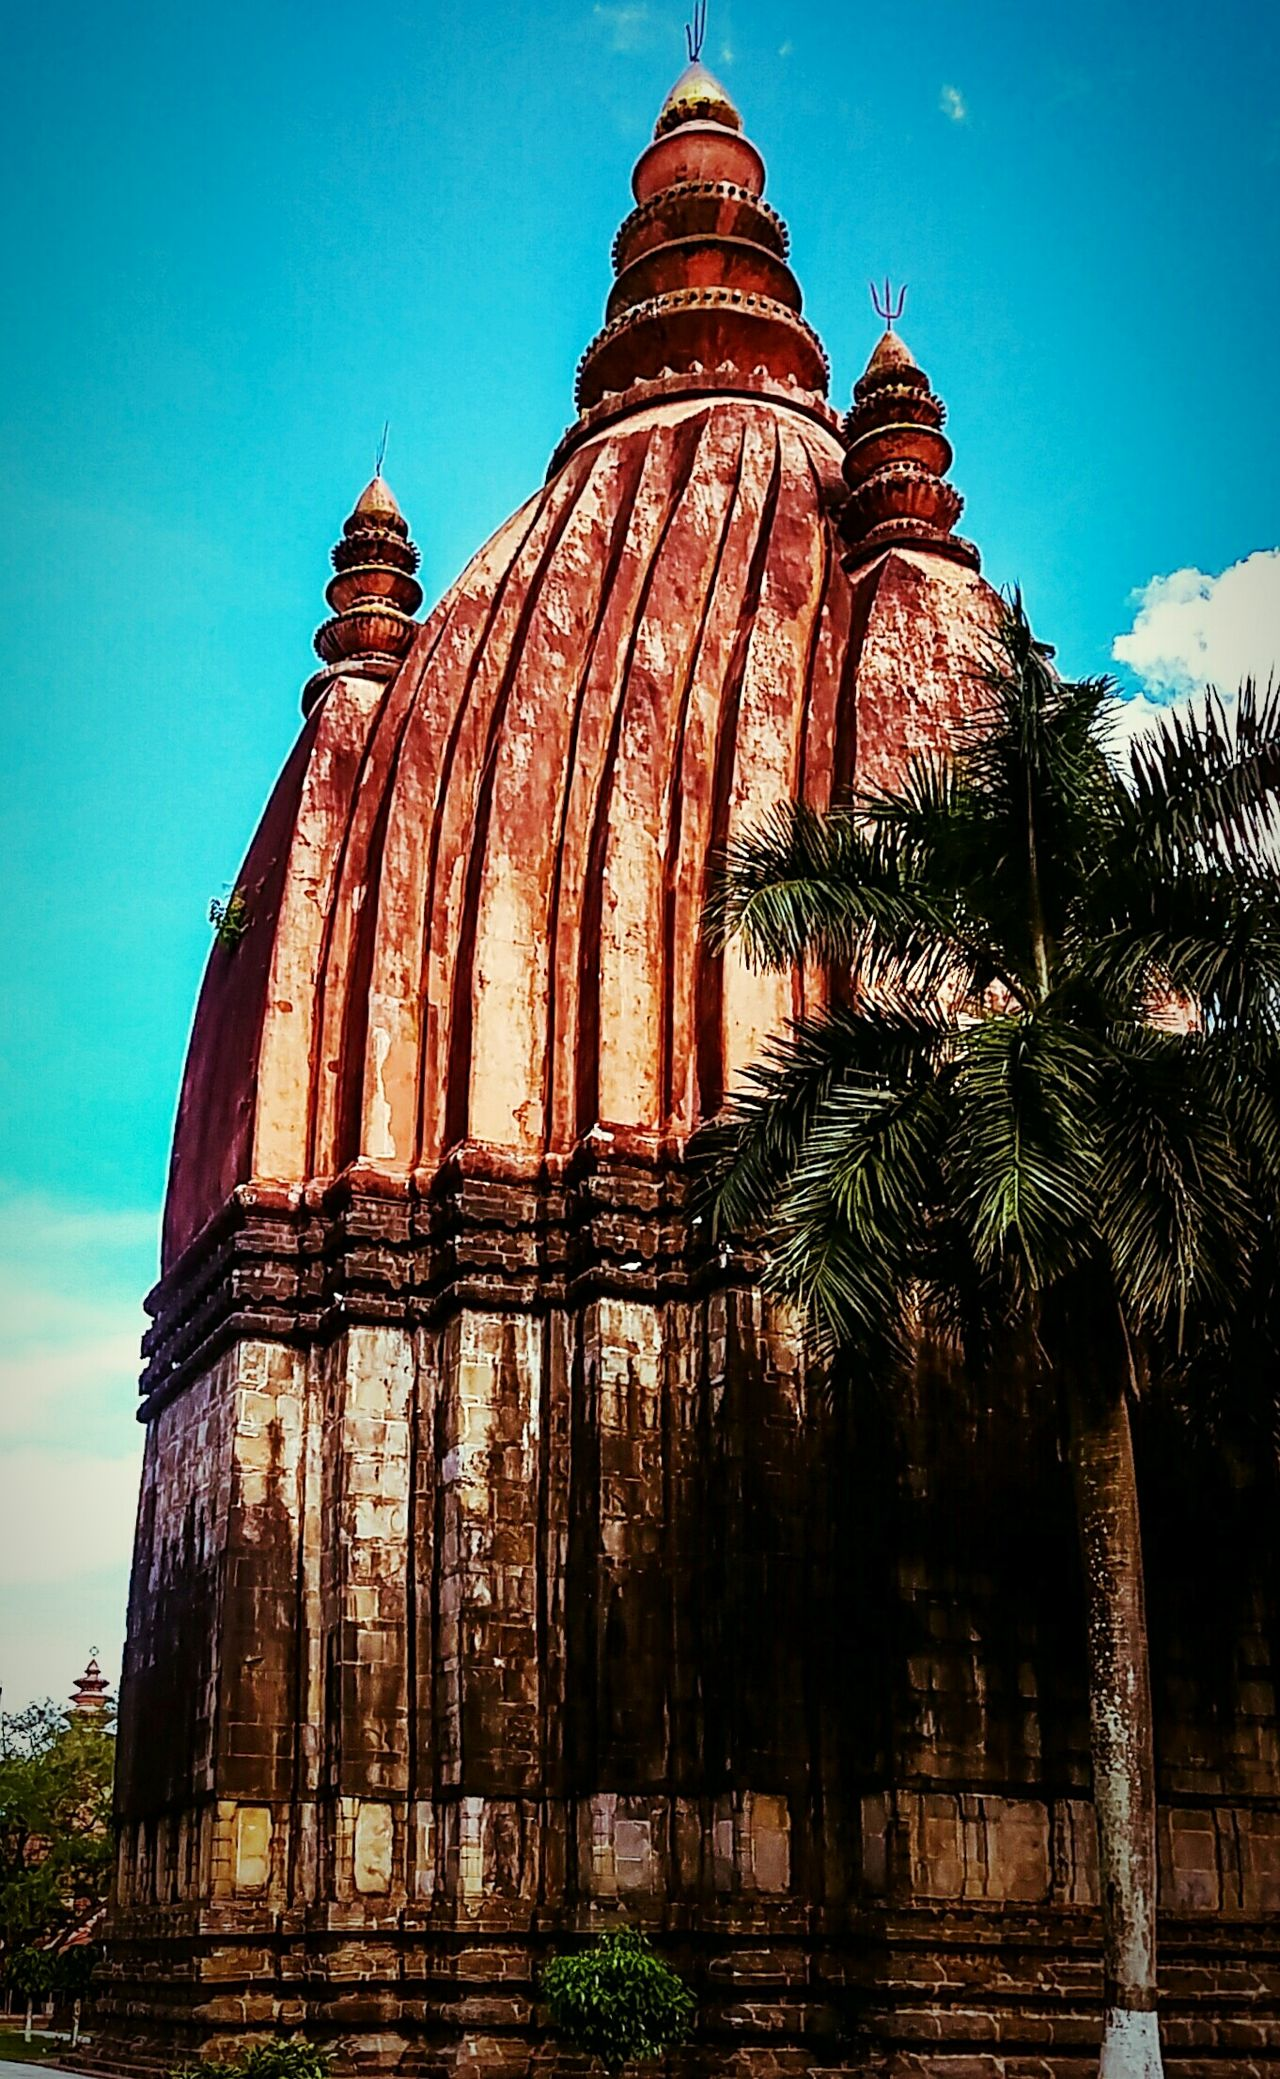 Shivadol....The great Shiva temple Sky No People Architecture Outdoors Nature Day Travel Destinations Awesomeassam Sivasagar Assam, India Ahoms Temple Architecture Templesofindia Templephotography Temples And Shrines Shiva Temple Shivamandir My Year My View